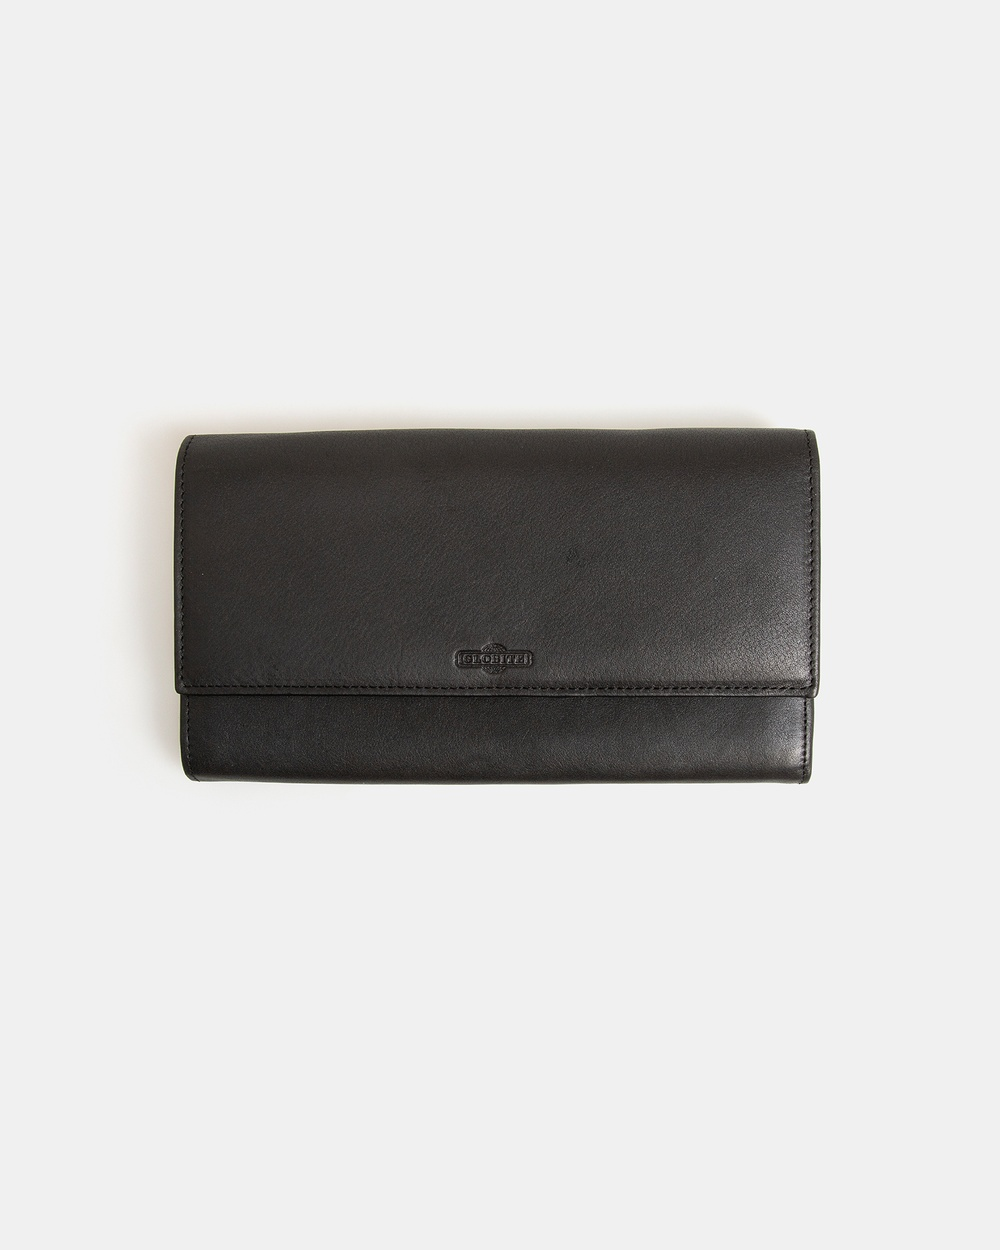 Globite Leather Travel Clutch with RFID and Luggage Black